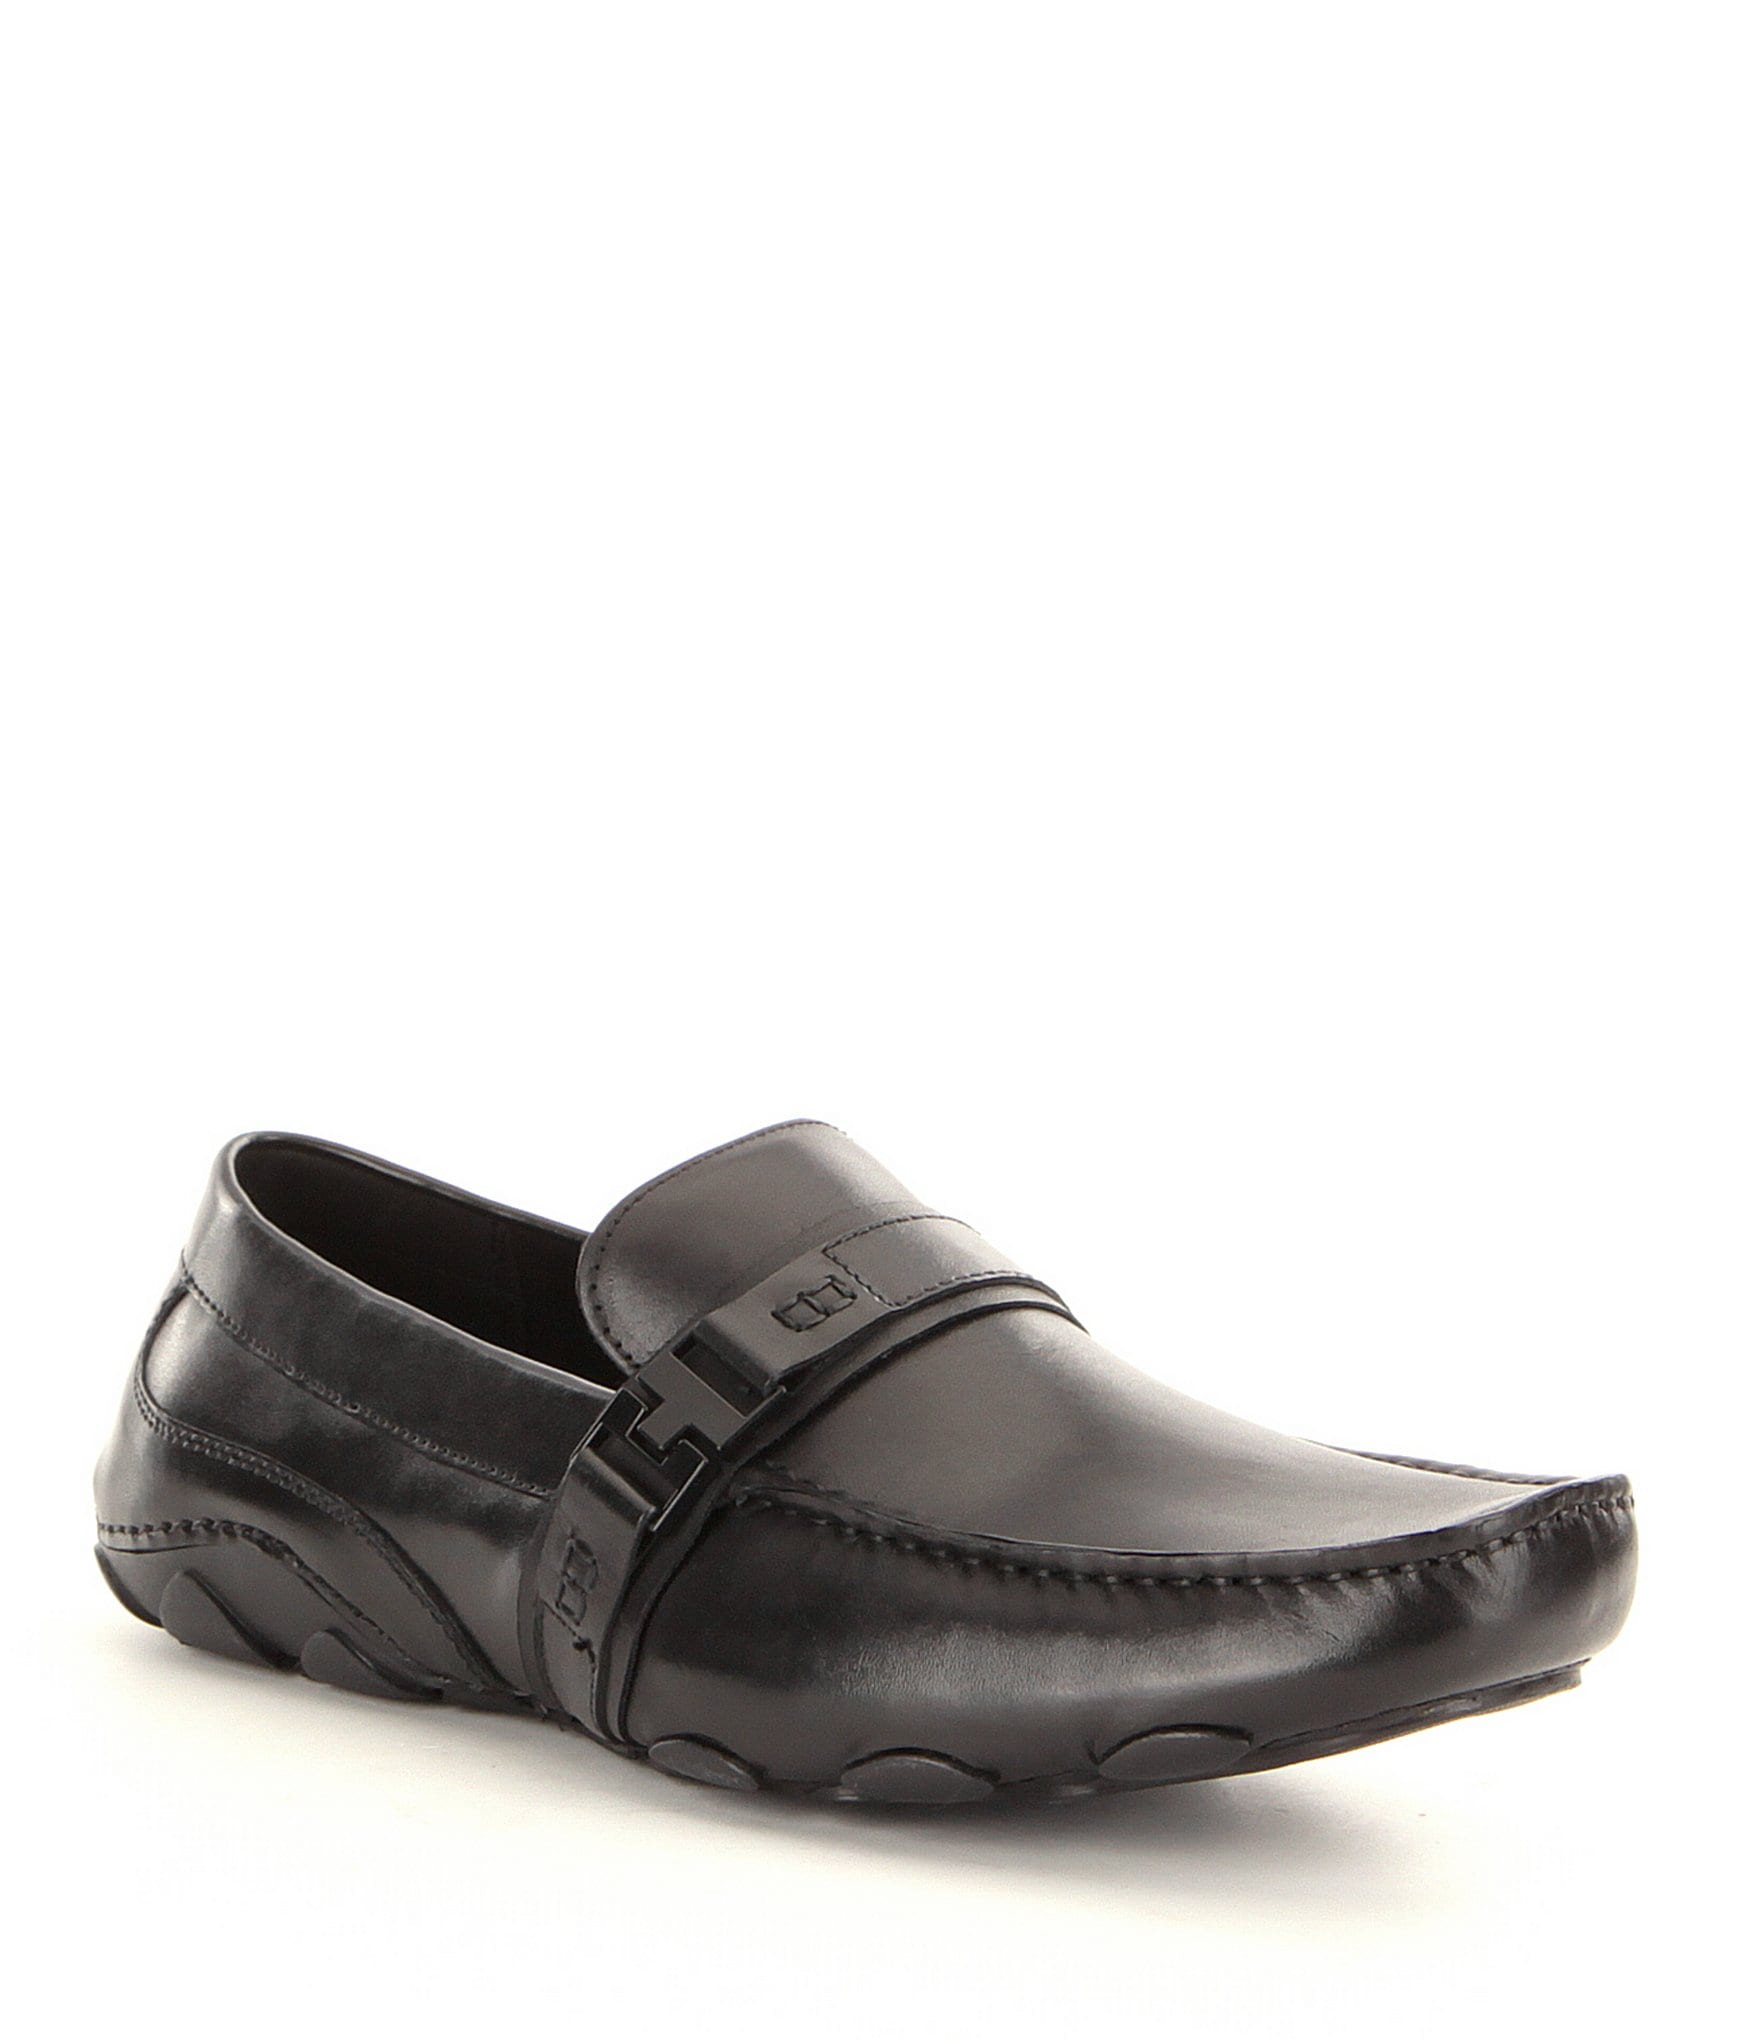 Reaction Kenneth Cole Shoes Review